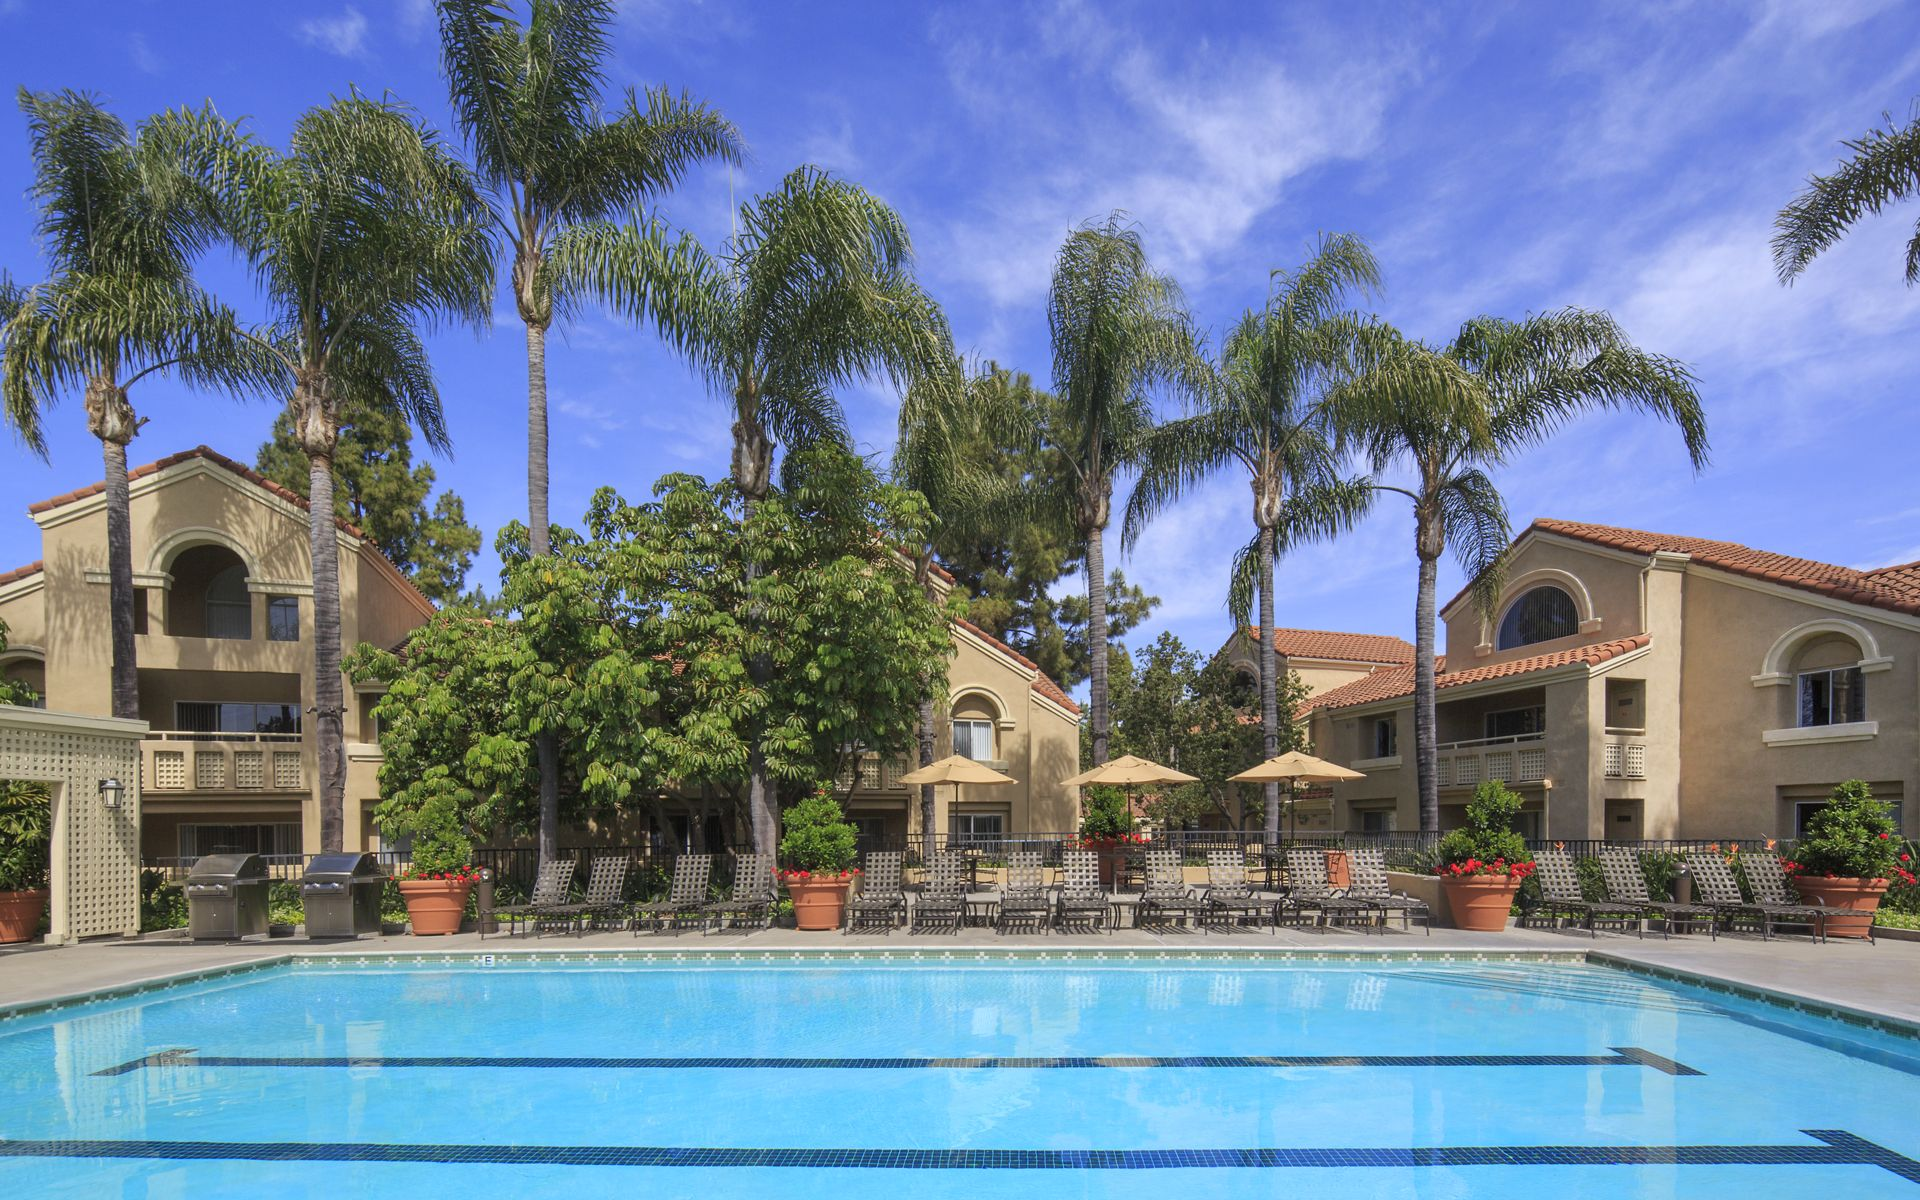 Pool view at San Leon Villa Apartment Homes in Irvine, CA.